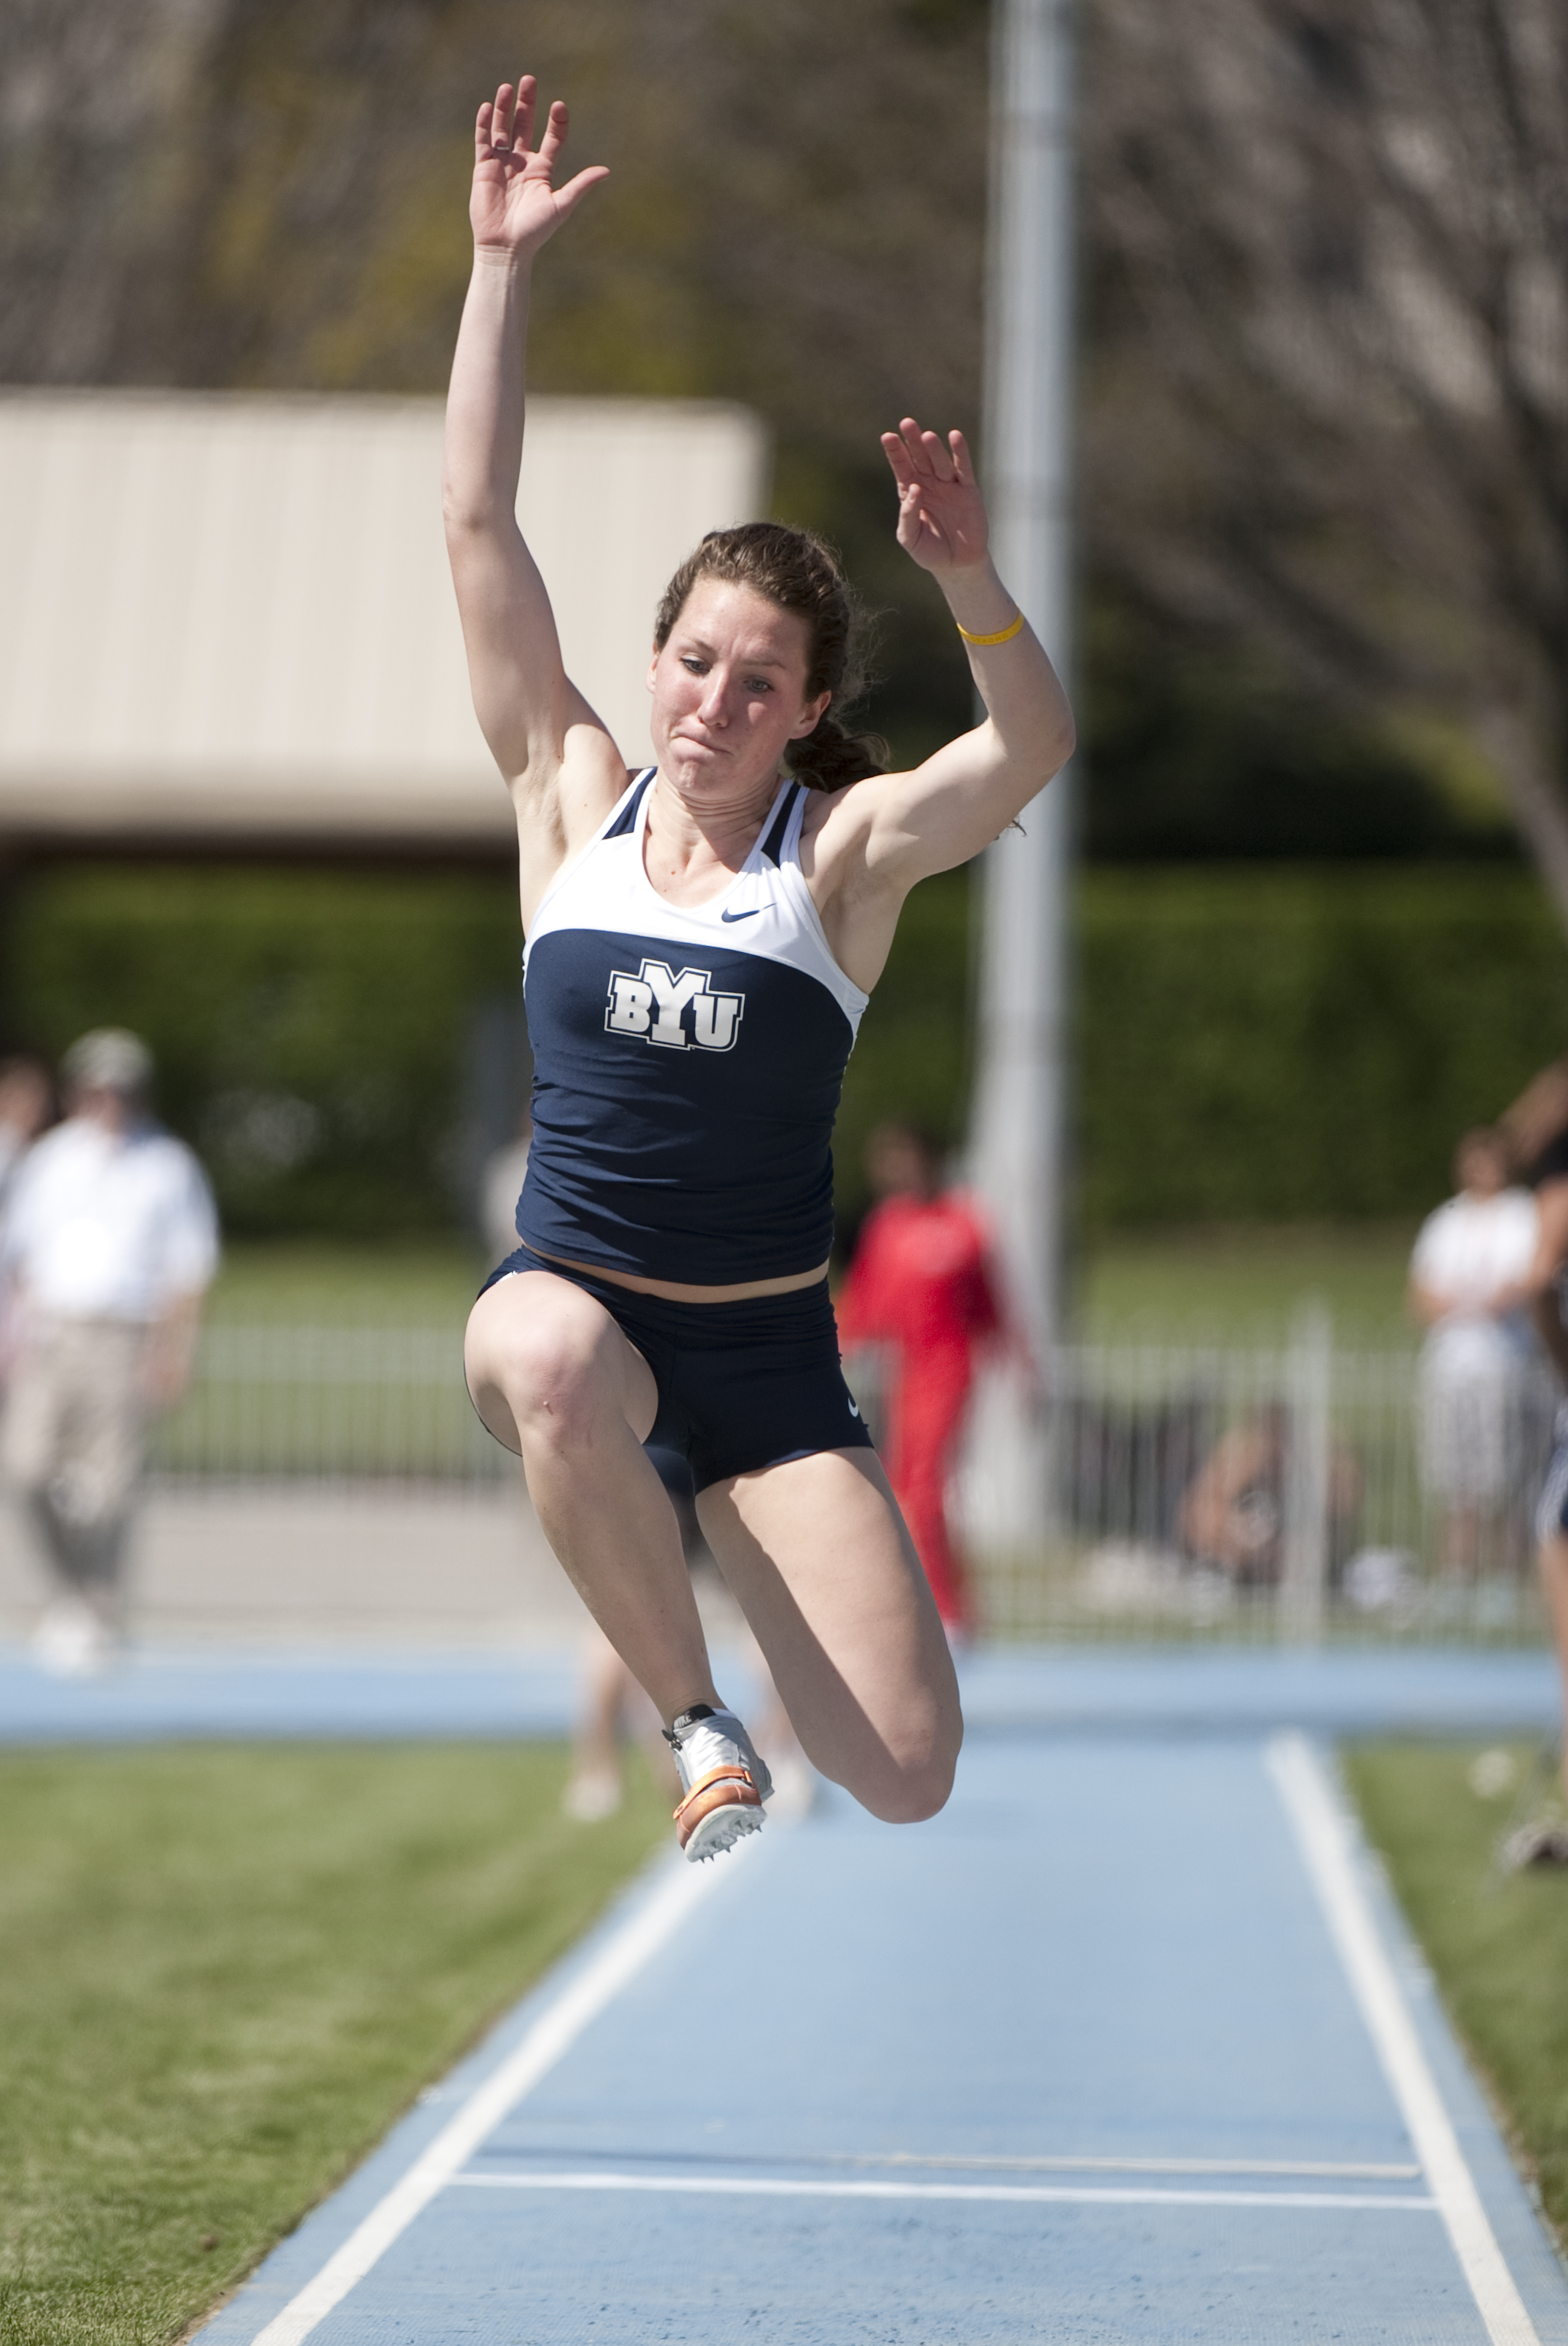 BYU tracksters run away with several top finishes at UW and Air Force